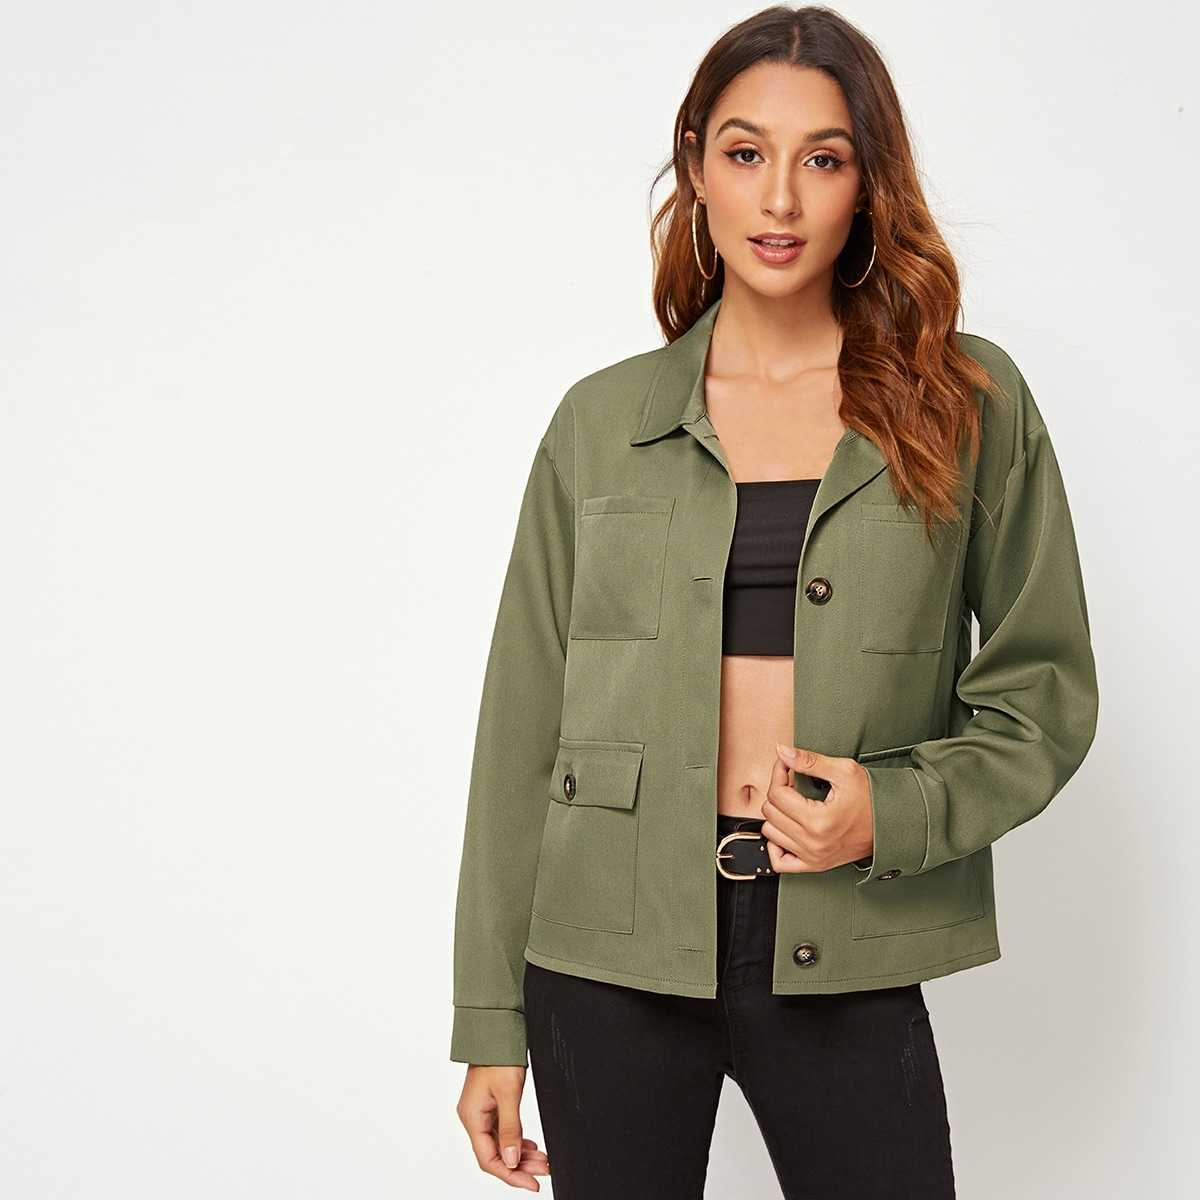 Button Front Flap Pocket Belted Jacket in Army Green by ROMWE on GOOFASH